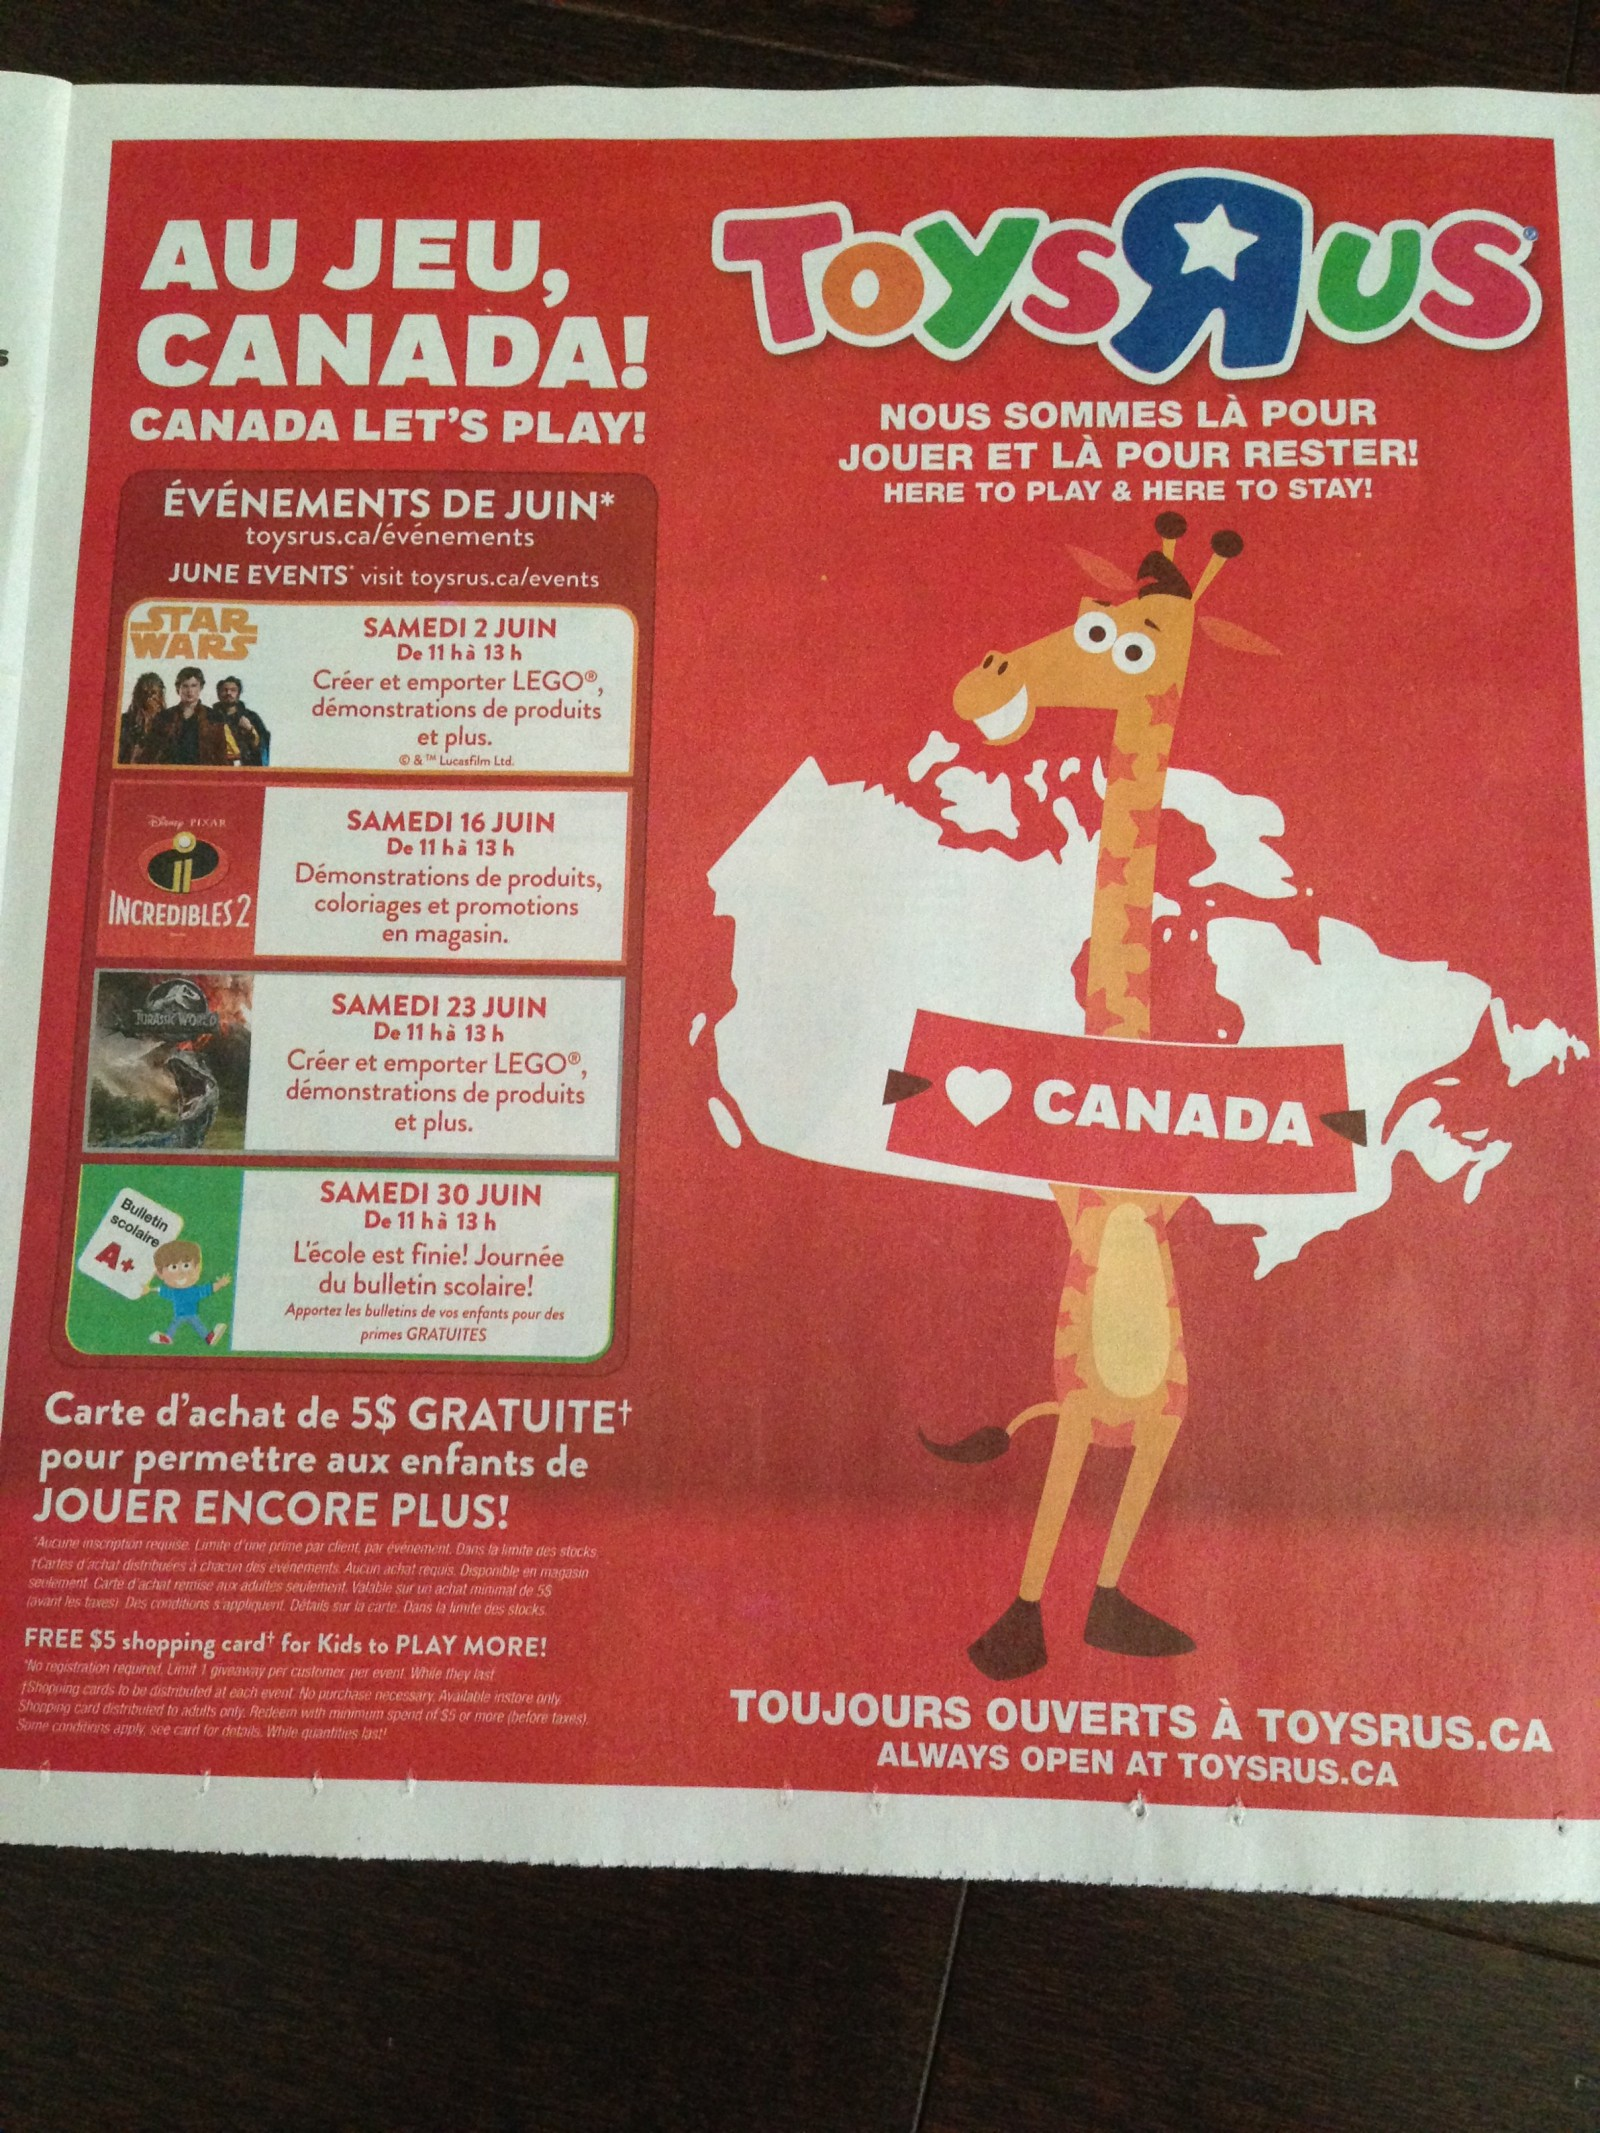 Transformers News: Toys R Us Canada Here to Stay and Celebrating This With Special Events and Free Giftcards